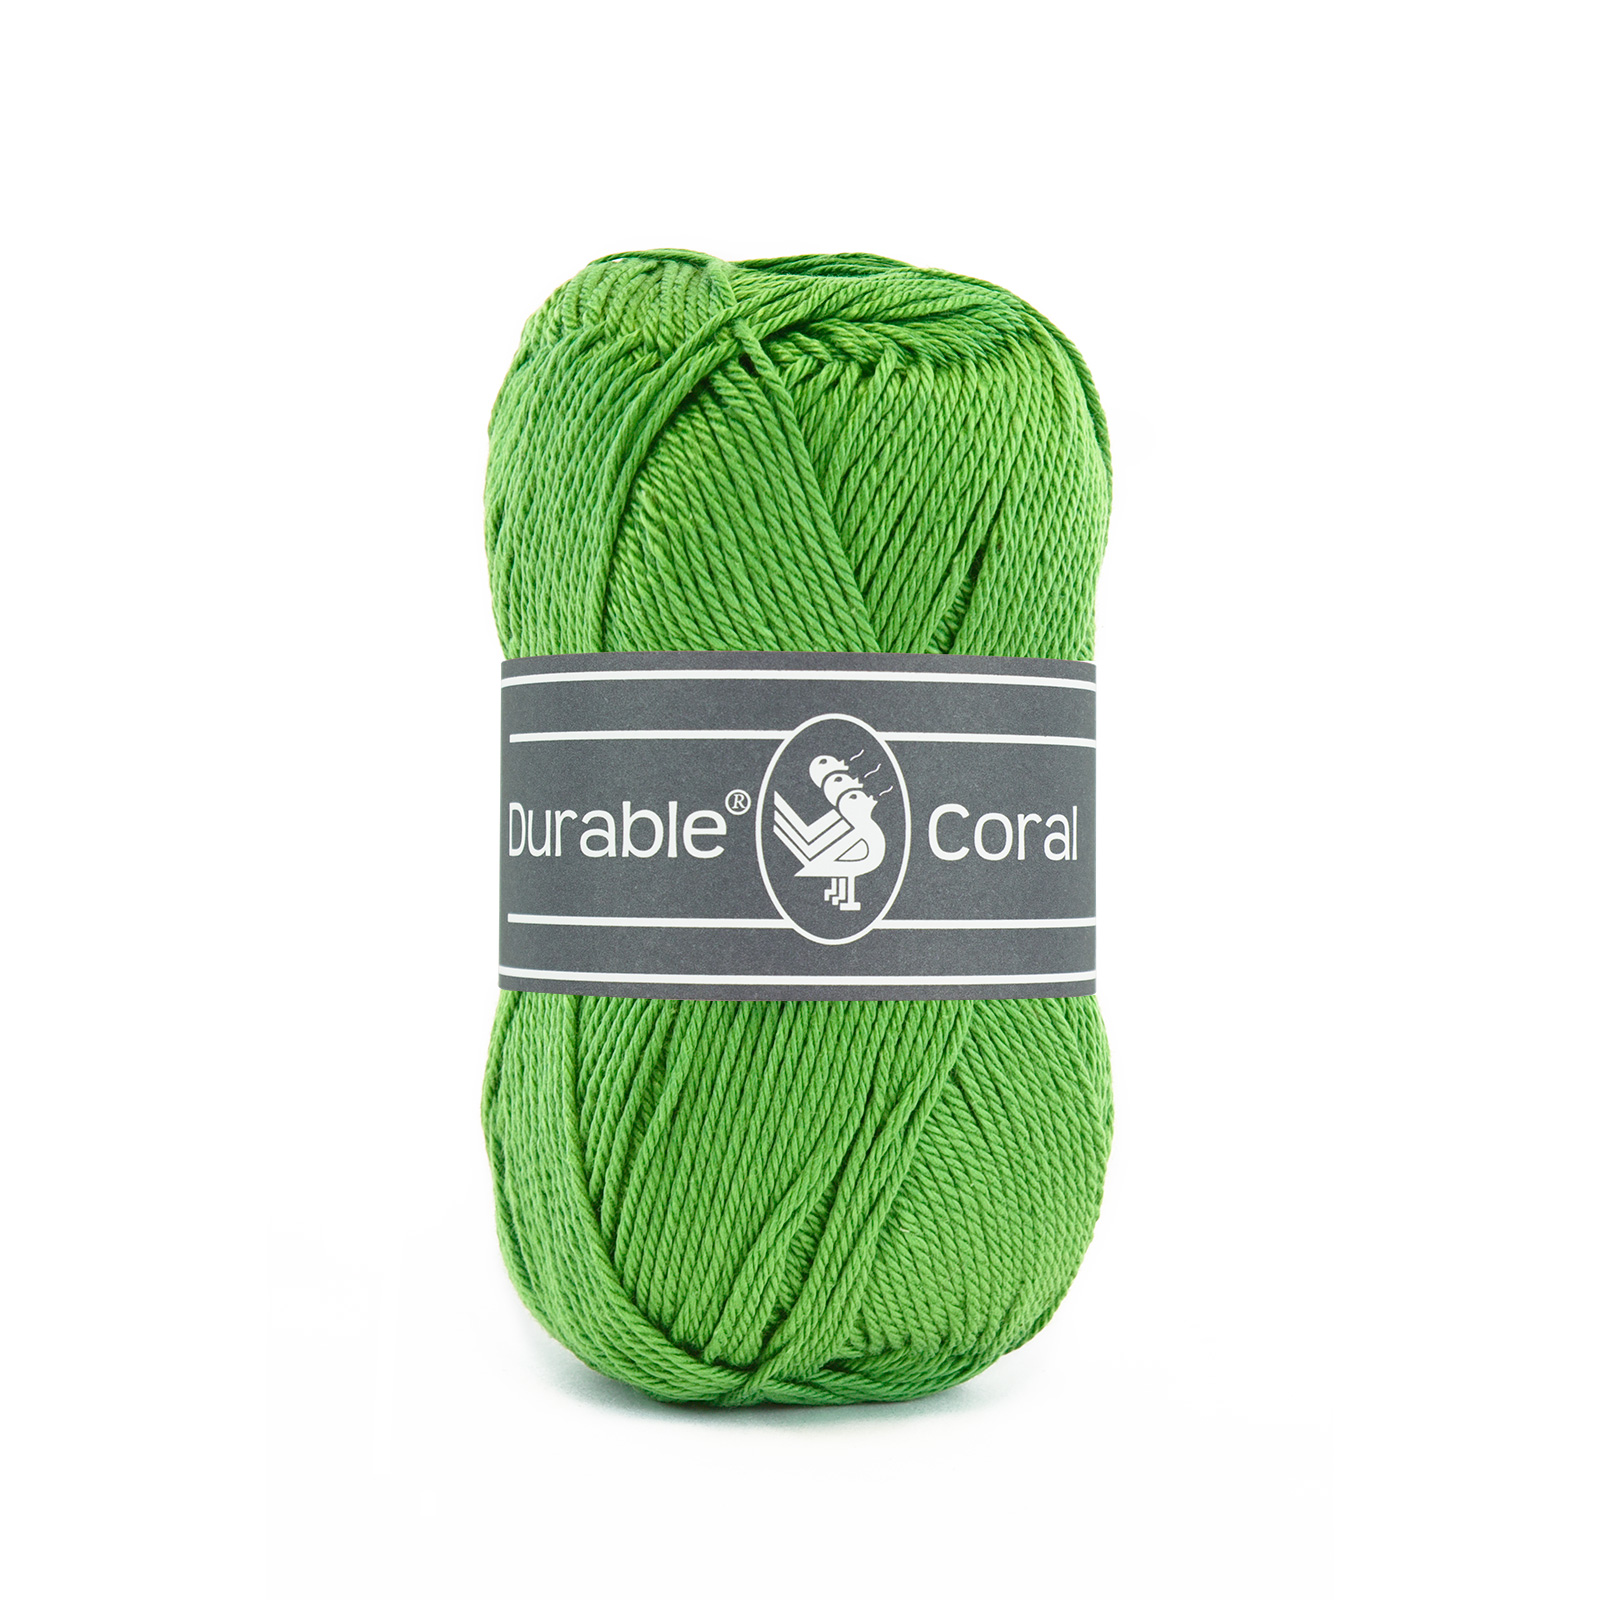 Durable Coral – 304 Golf Green